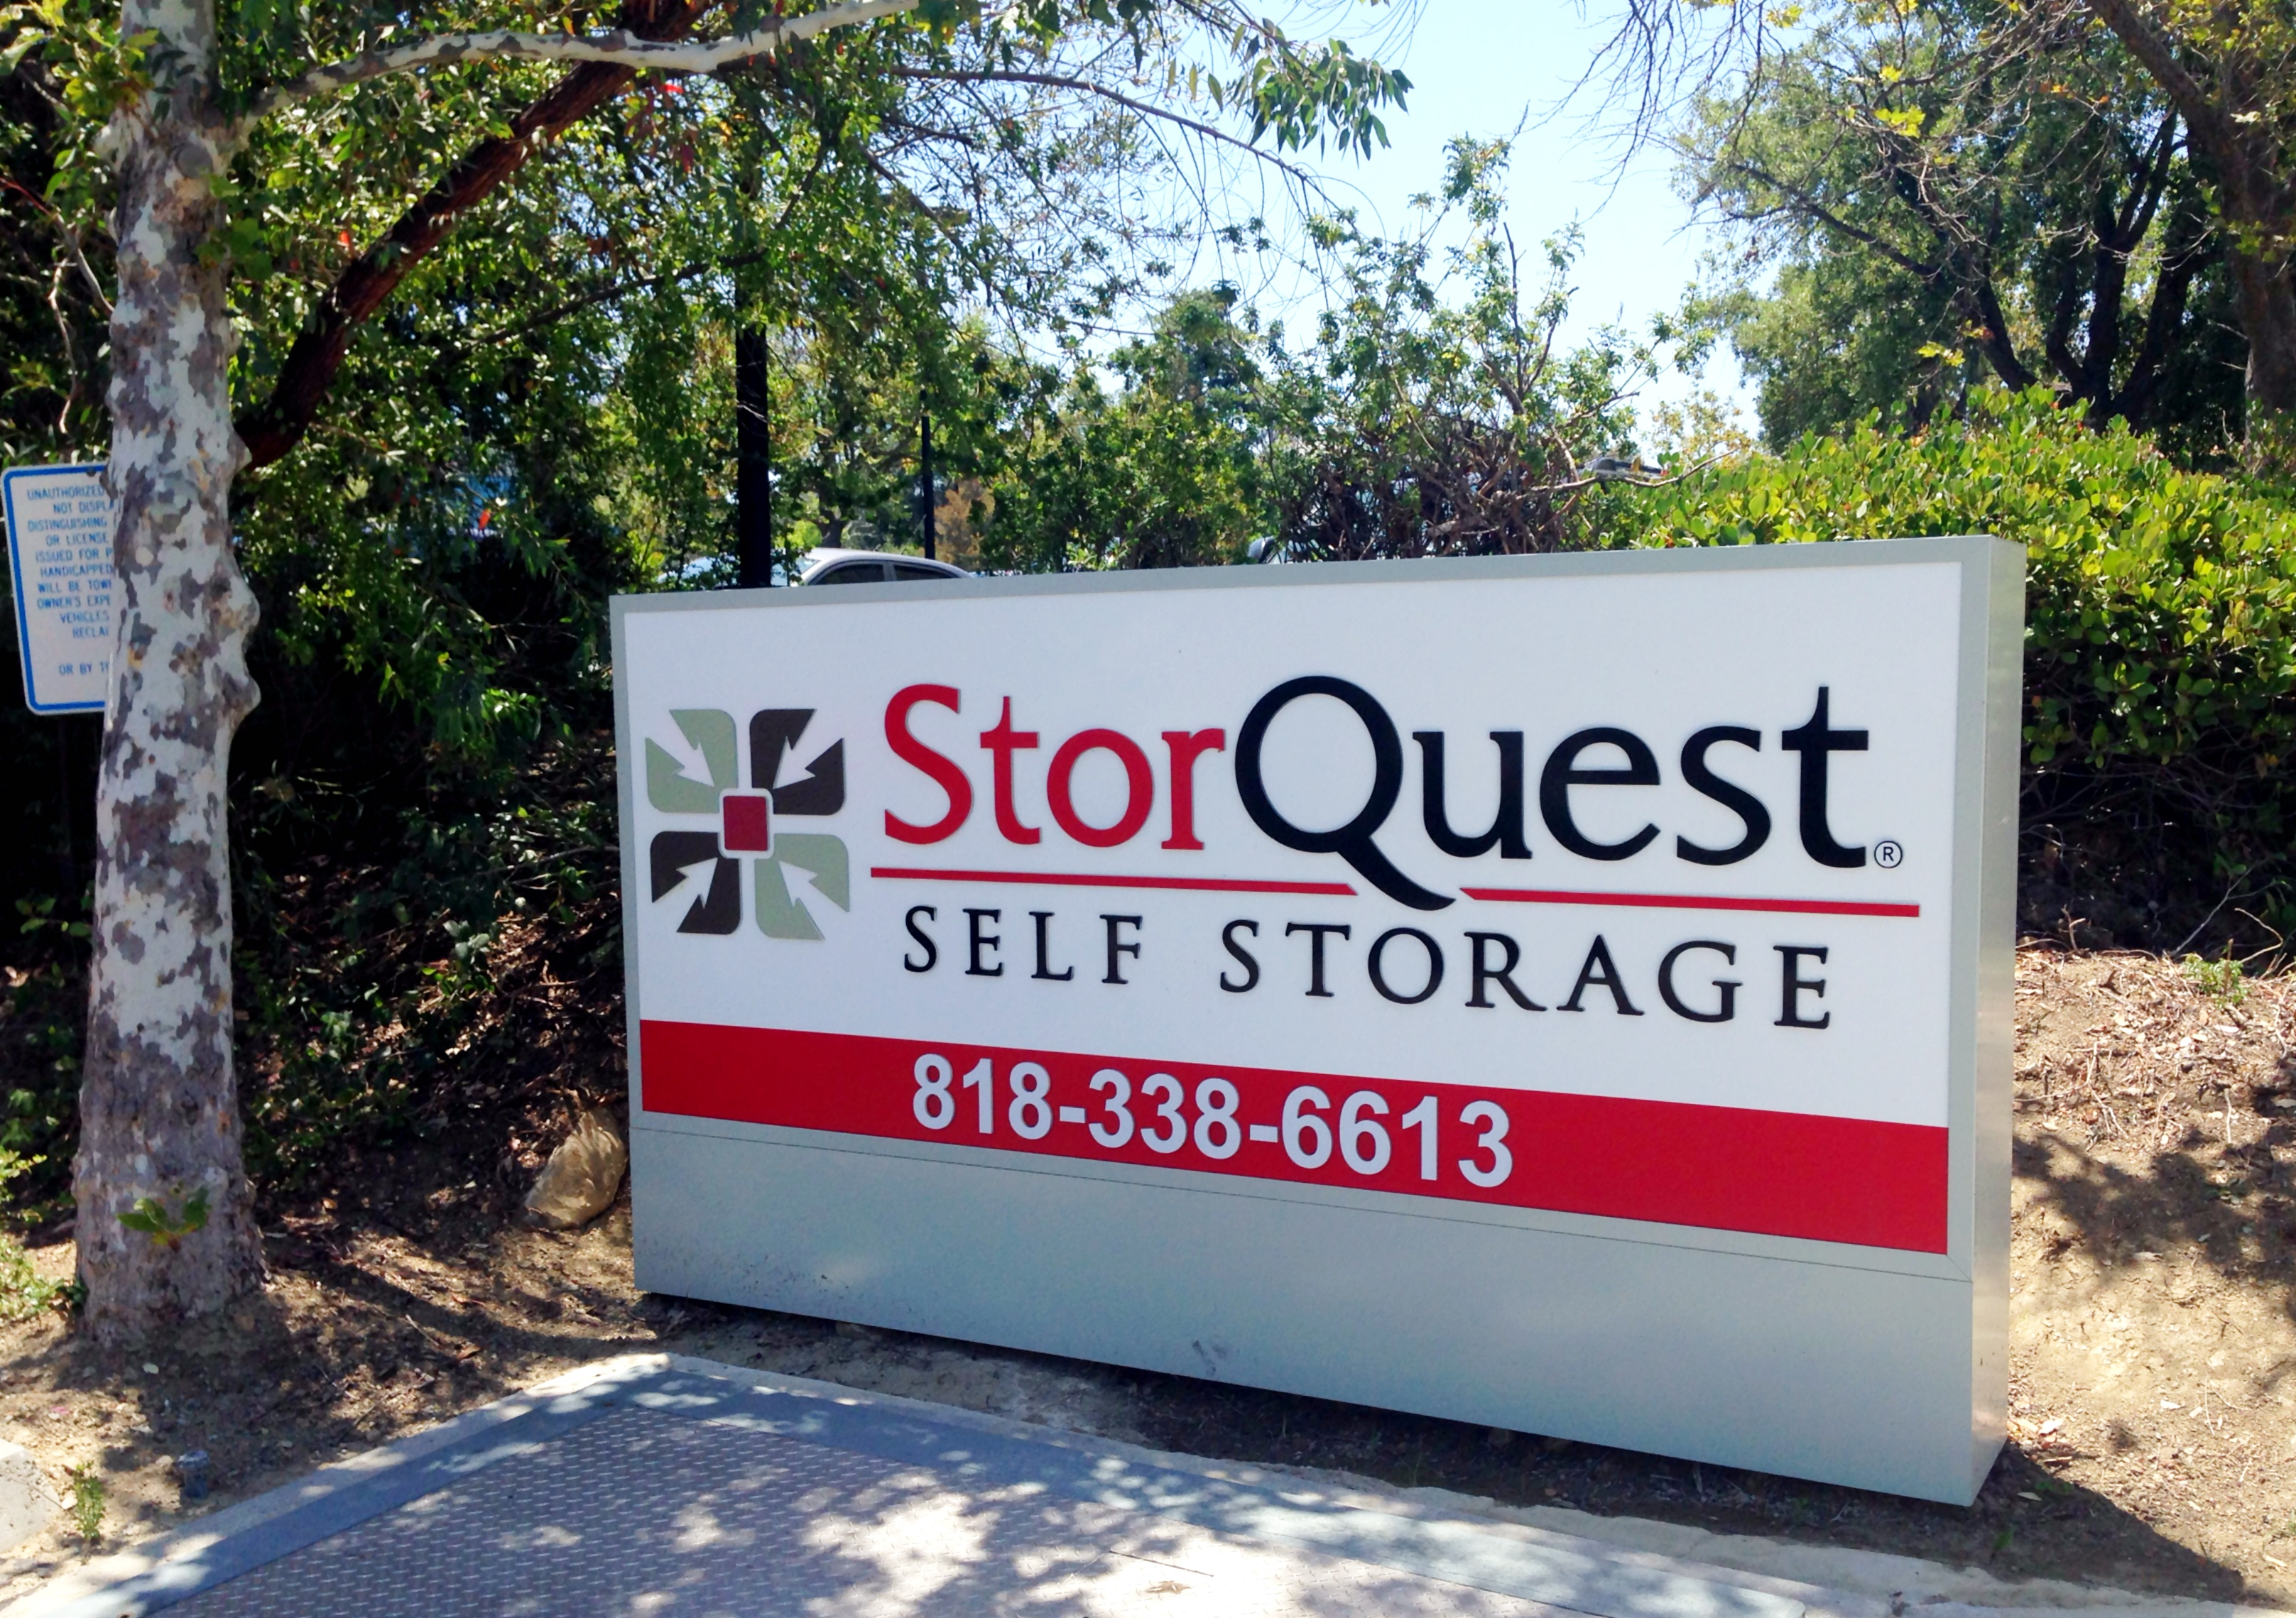 Storquest self storage in westlake village welcome